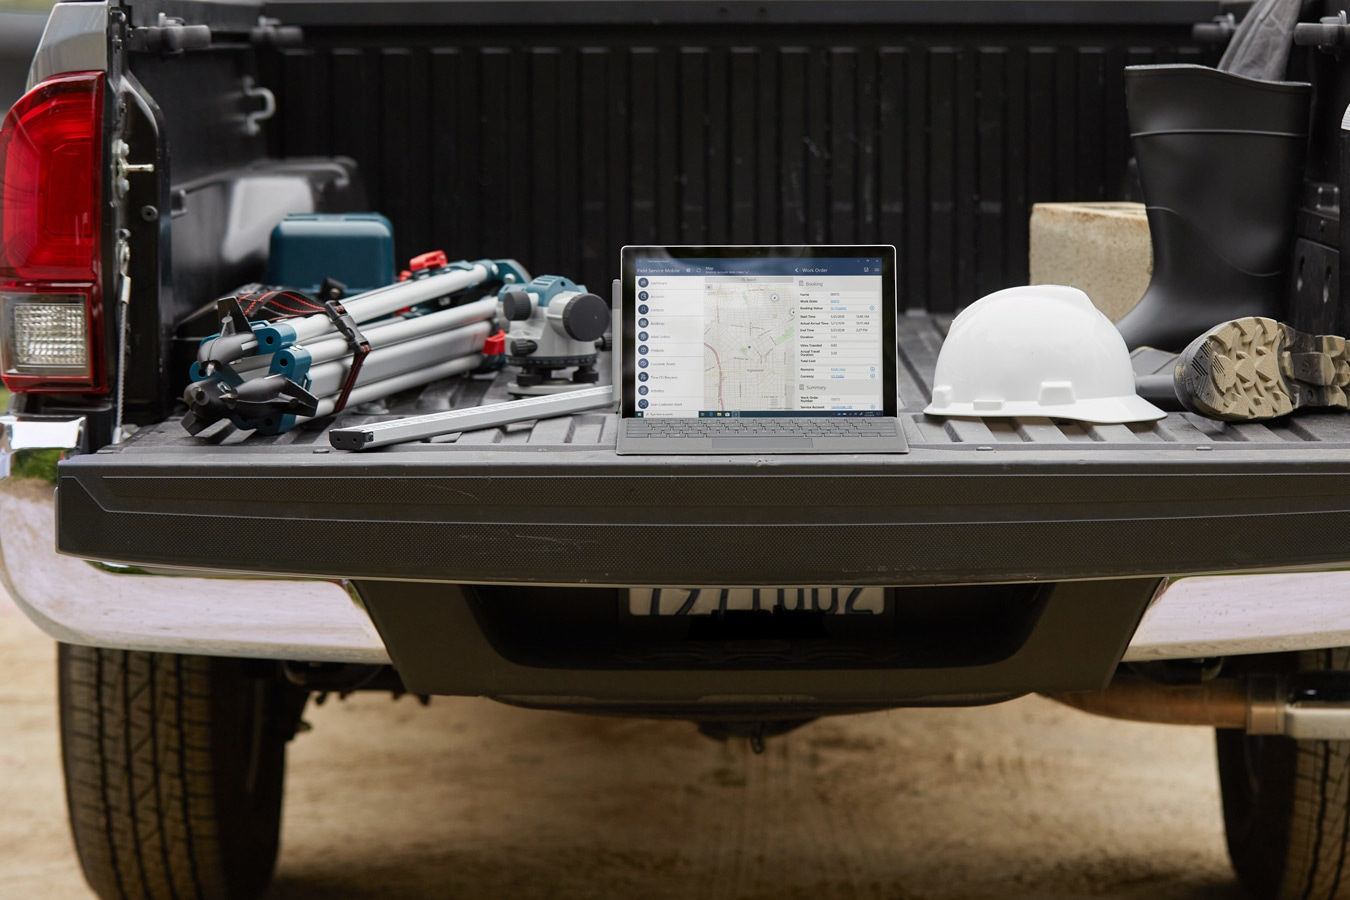 Surface Pro 7+‎ is shown in use while on the tailgate of a work truck at an offsite